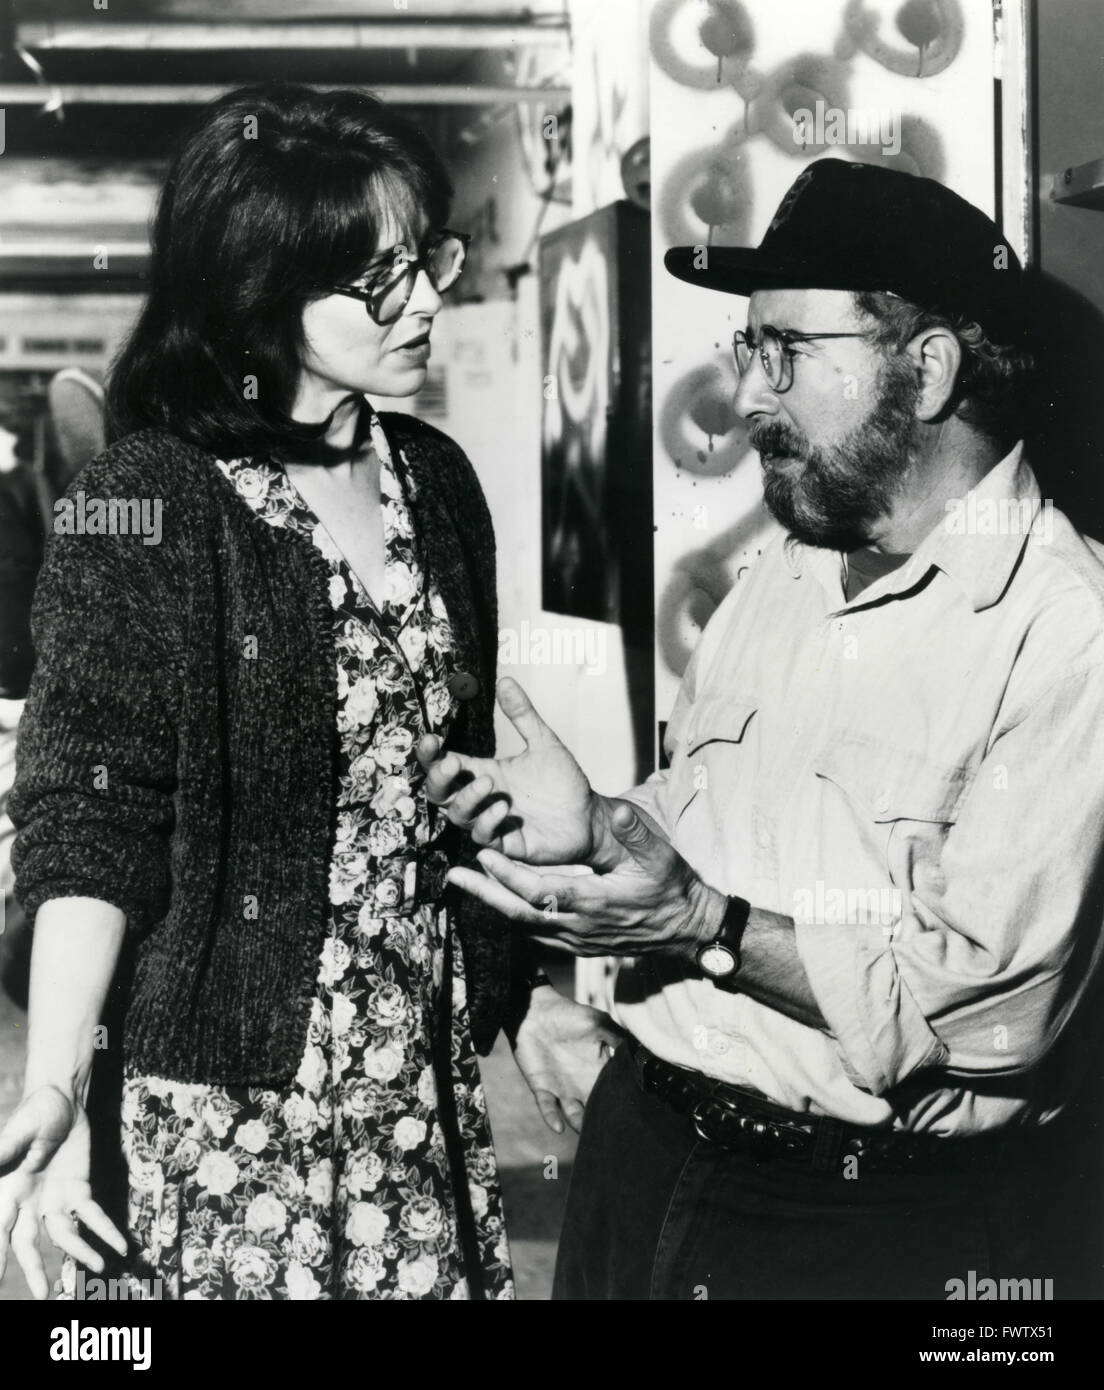 Michael Tucker And Carole Galloway In The Film A Town Torn Apart, USA 1992